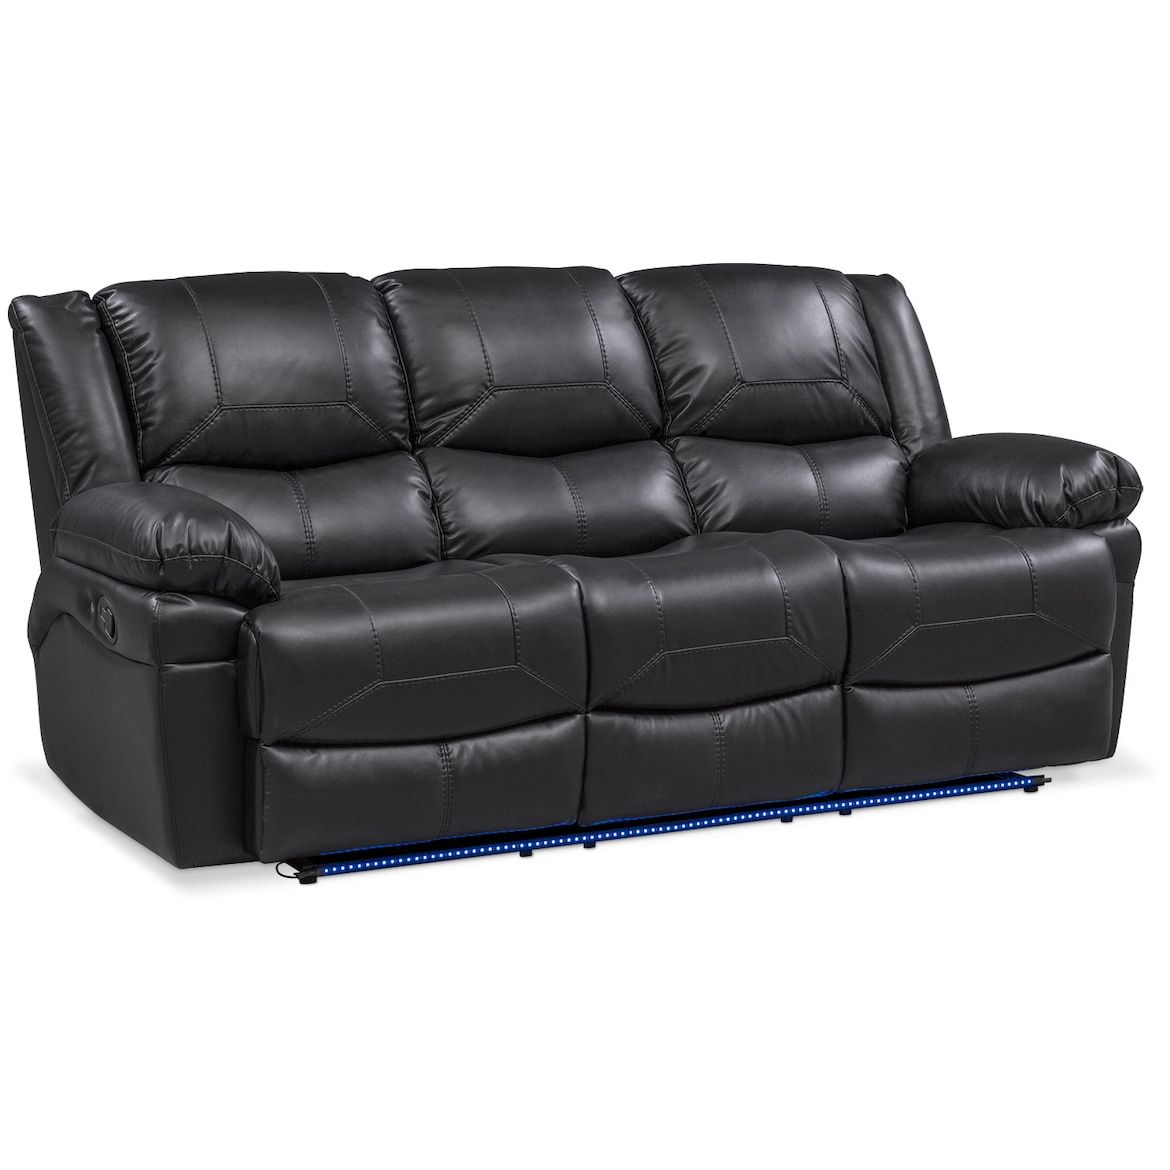 Monza Manual Reclining Sofa Black In 2019 Our Place